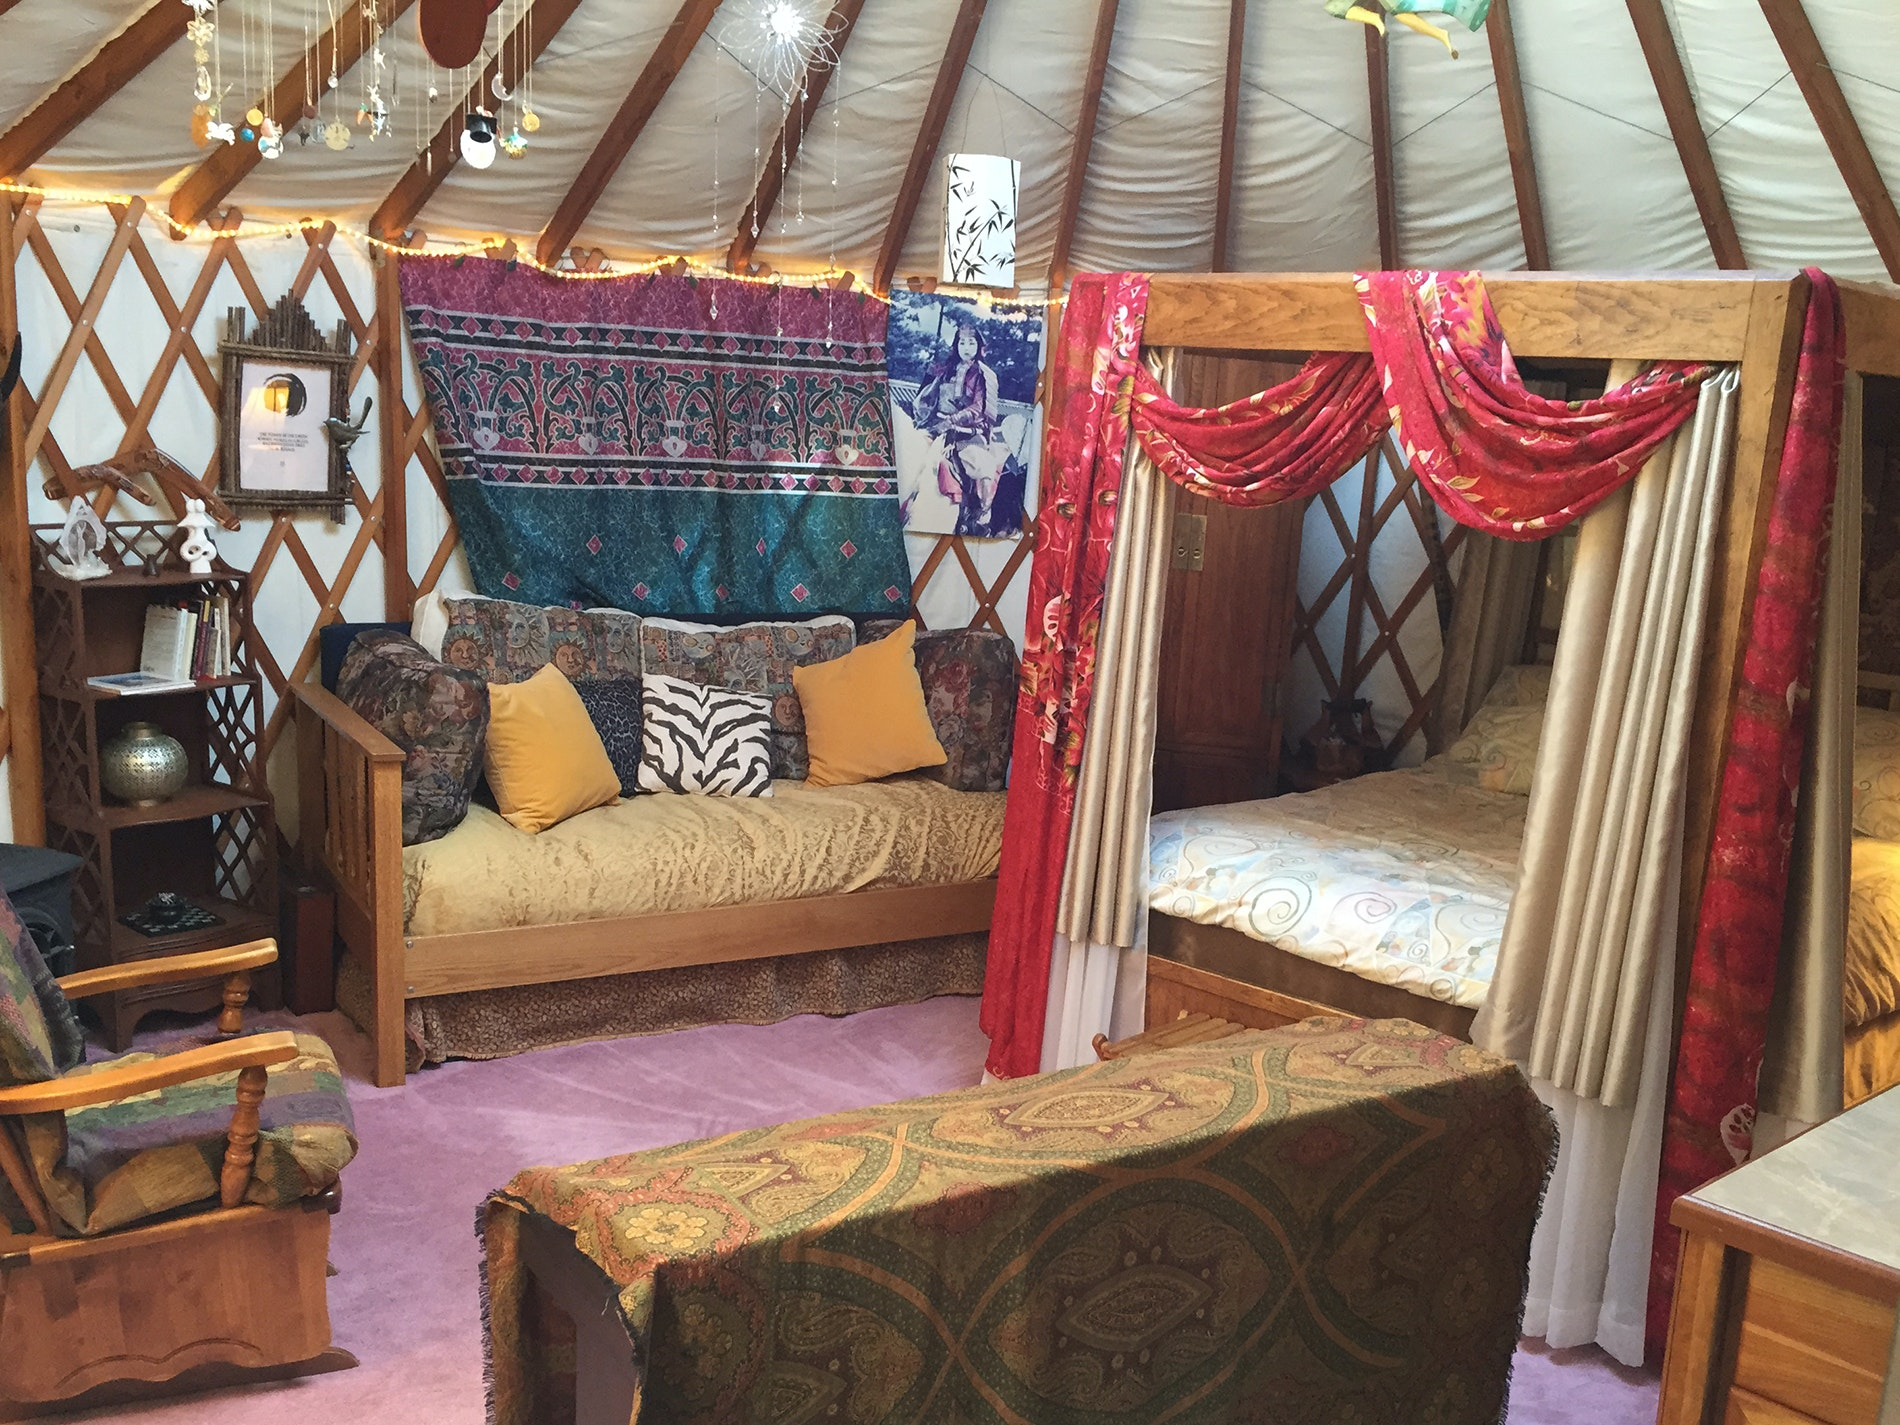 Pair urban adventure with the feel of a rural-flavored getaway, via this unusual yurt-based stay.